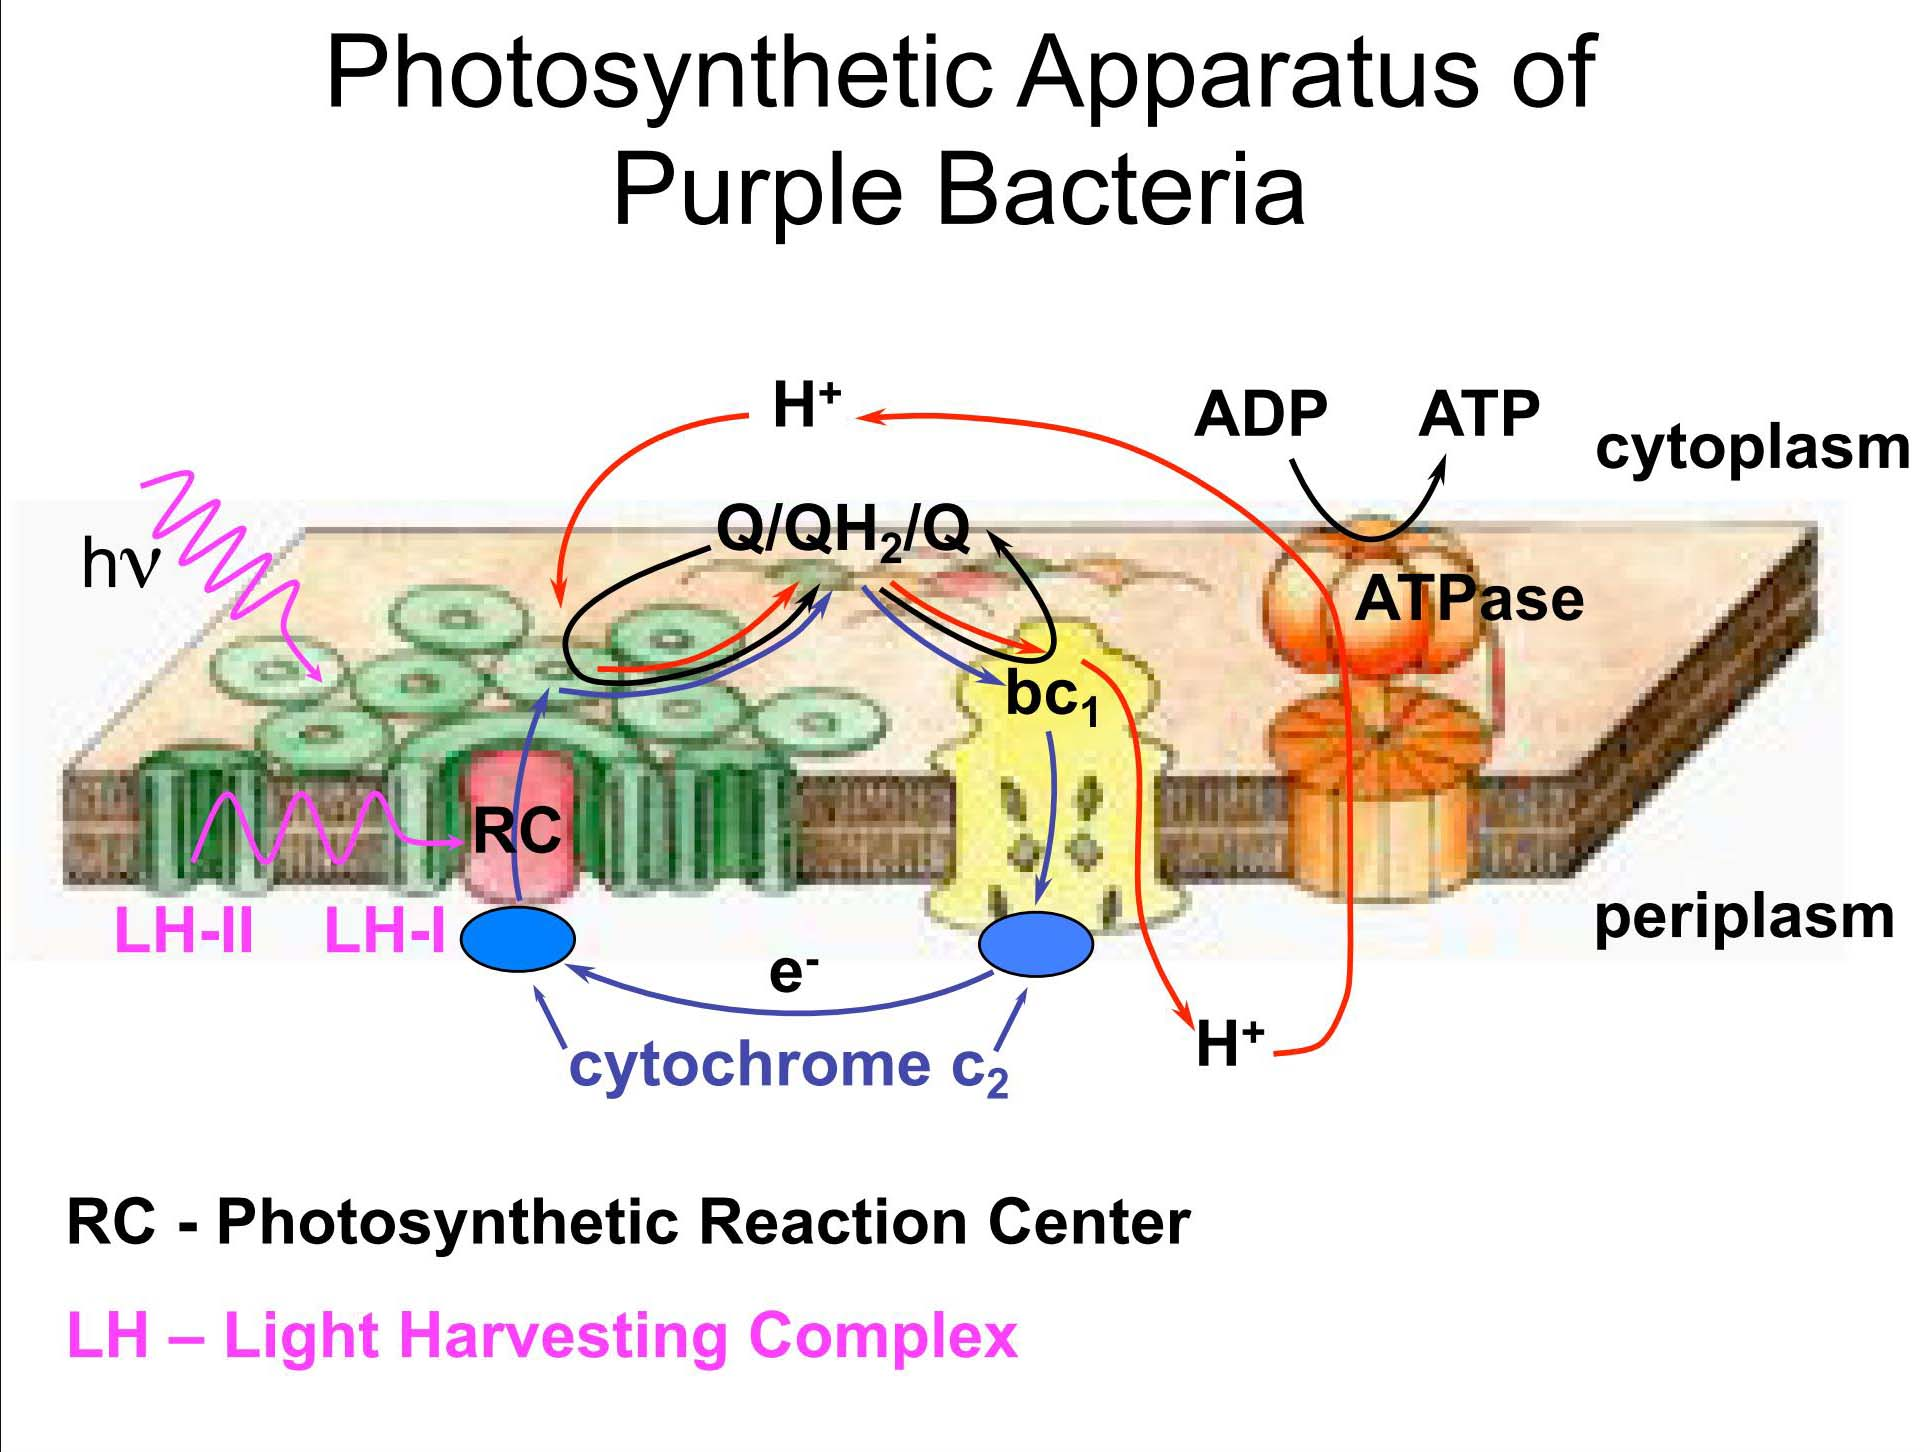 Photosynthetic Apparatus of Purple Bacteria